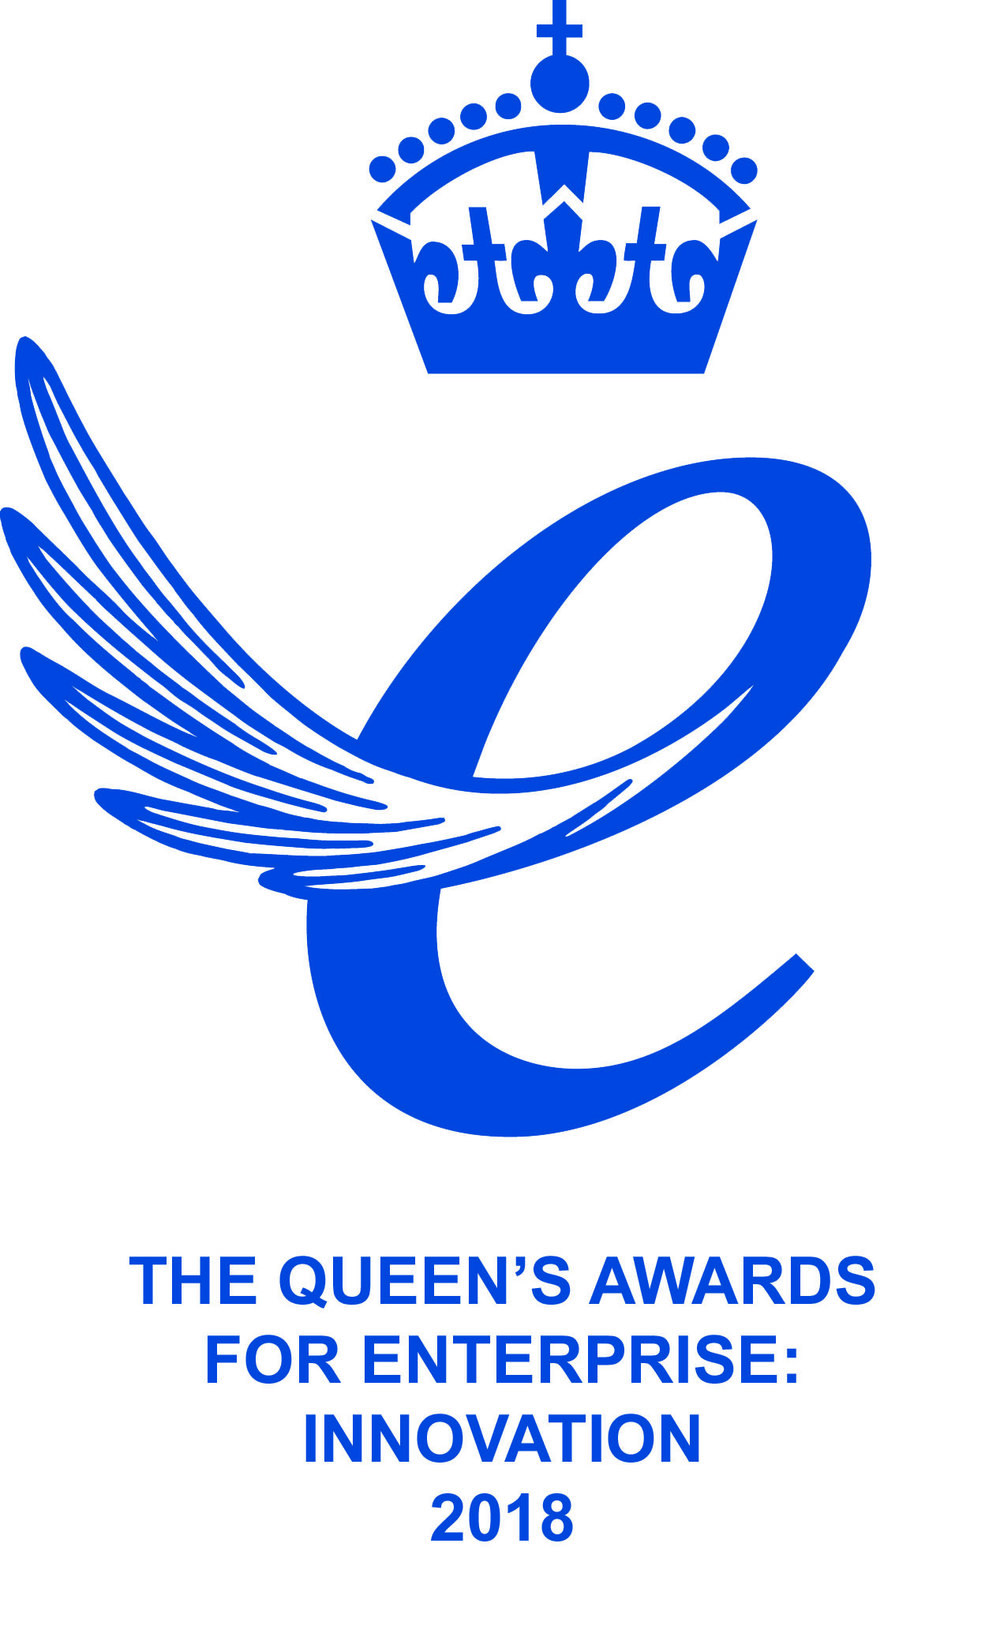 Queen's Award Innovation 2018 emblem.jpg